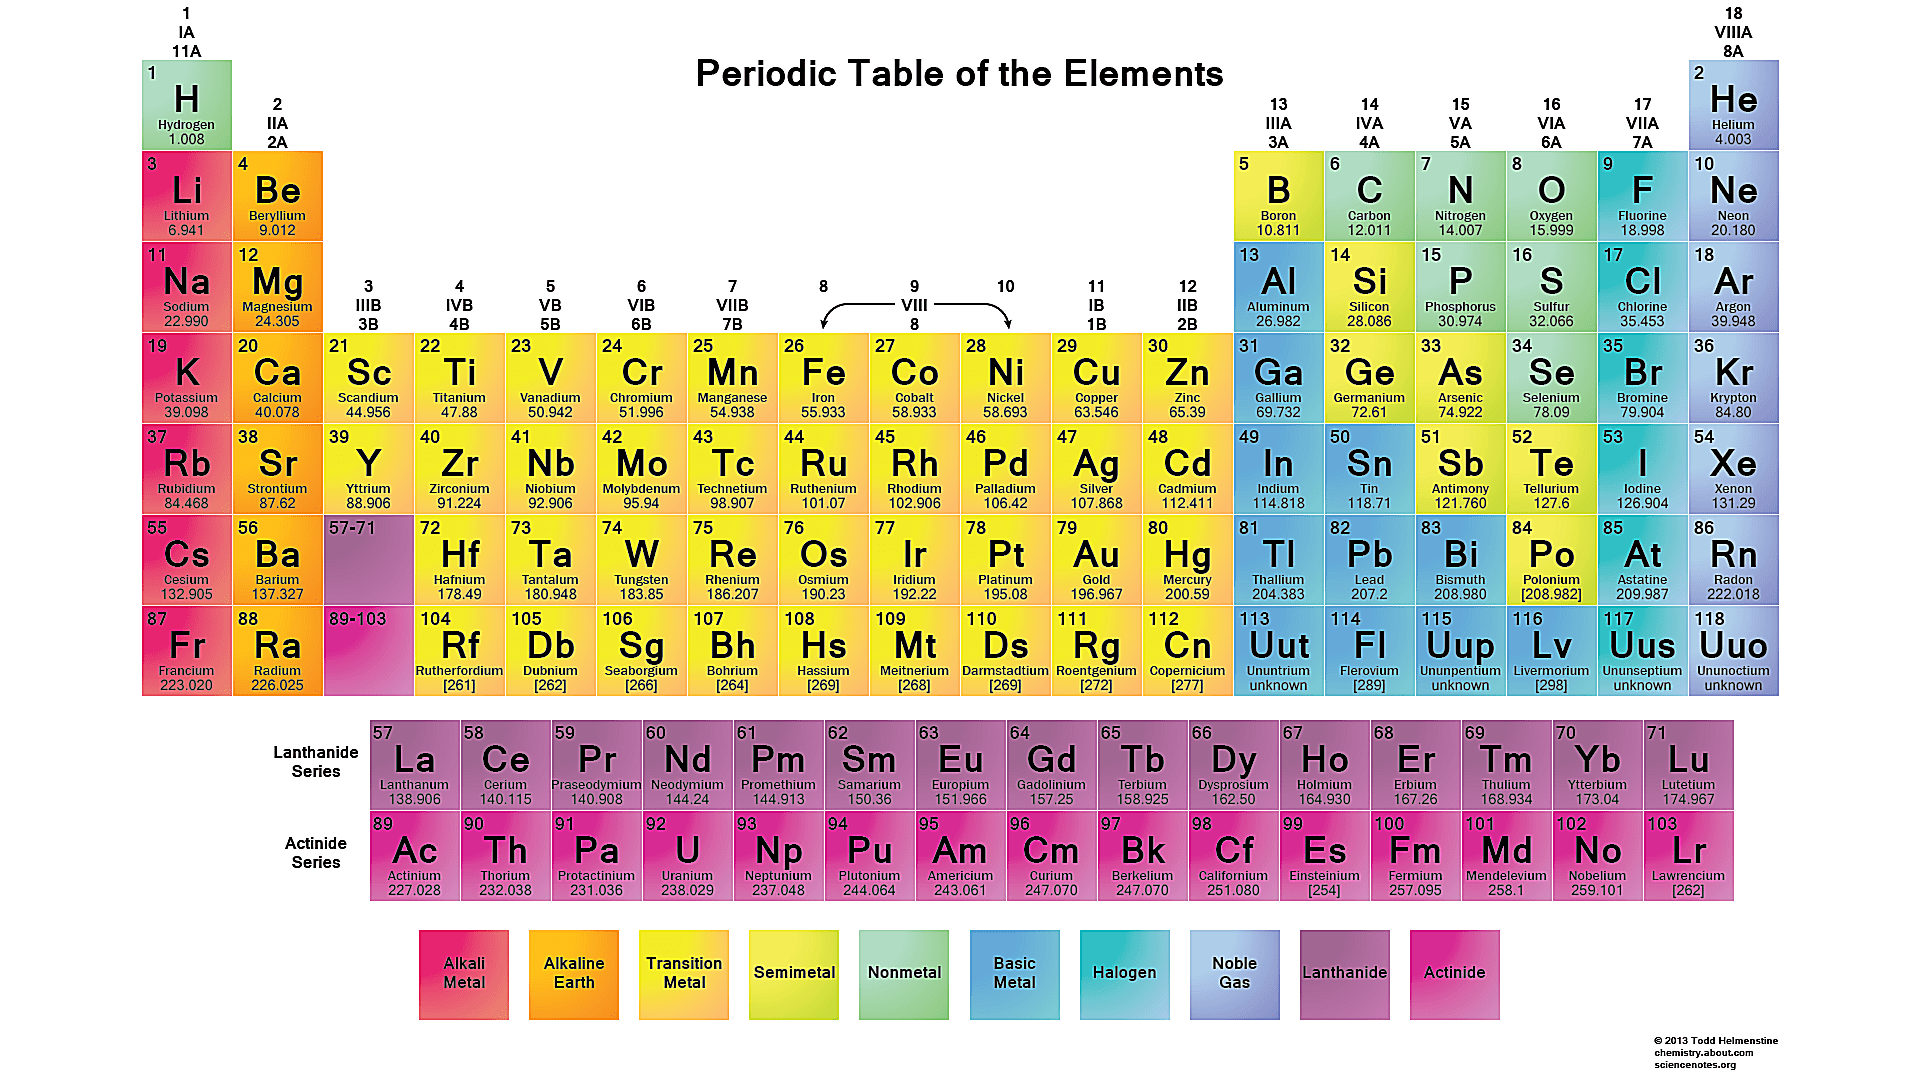 sometimes its nice to have a paper version of the periodic table of the elements that to refer to when working problems or doing experiments in the lab